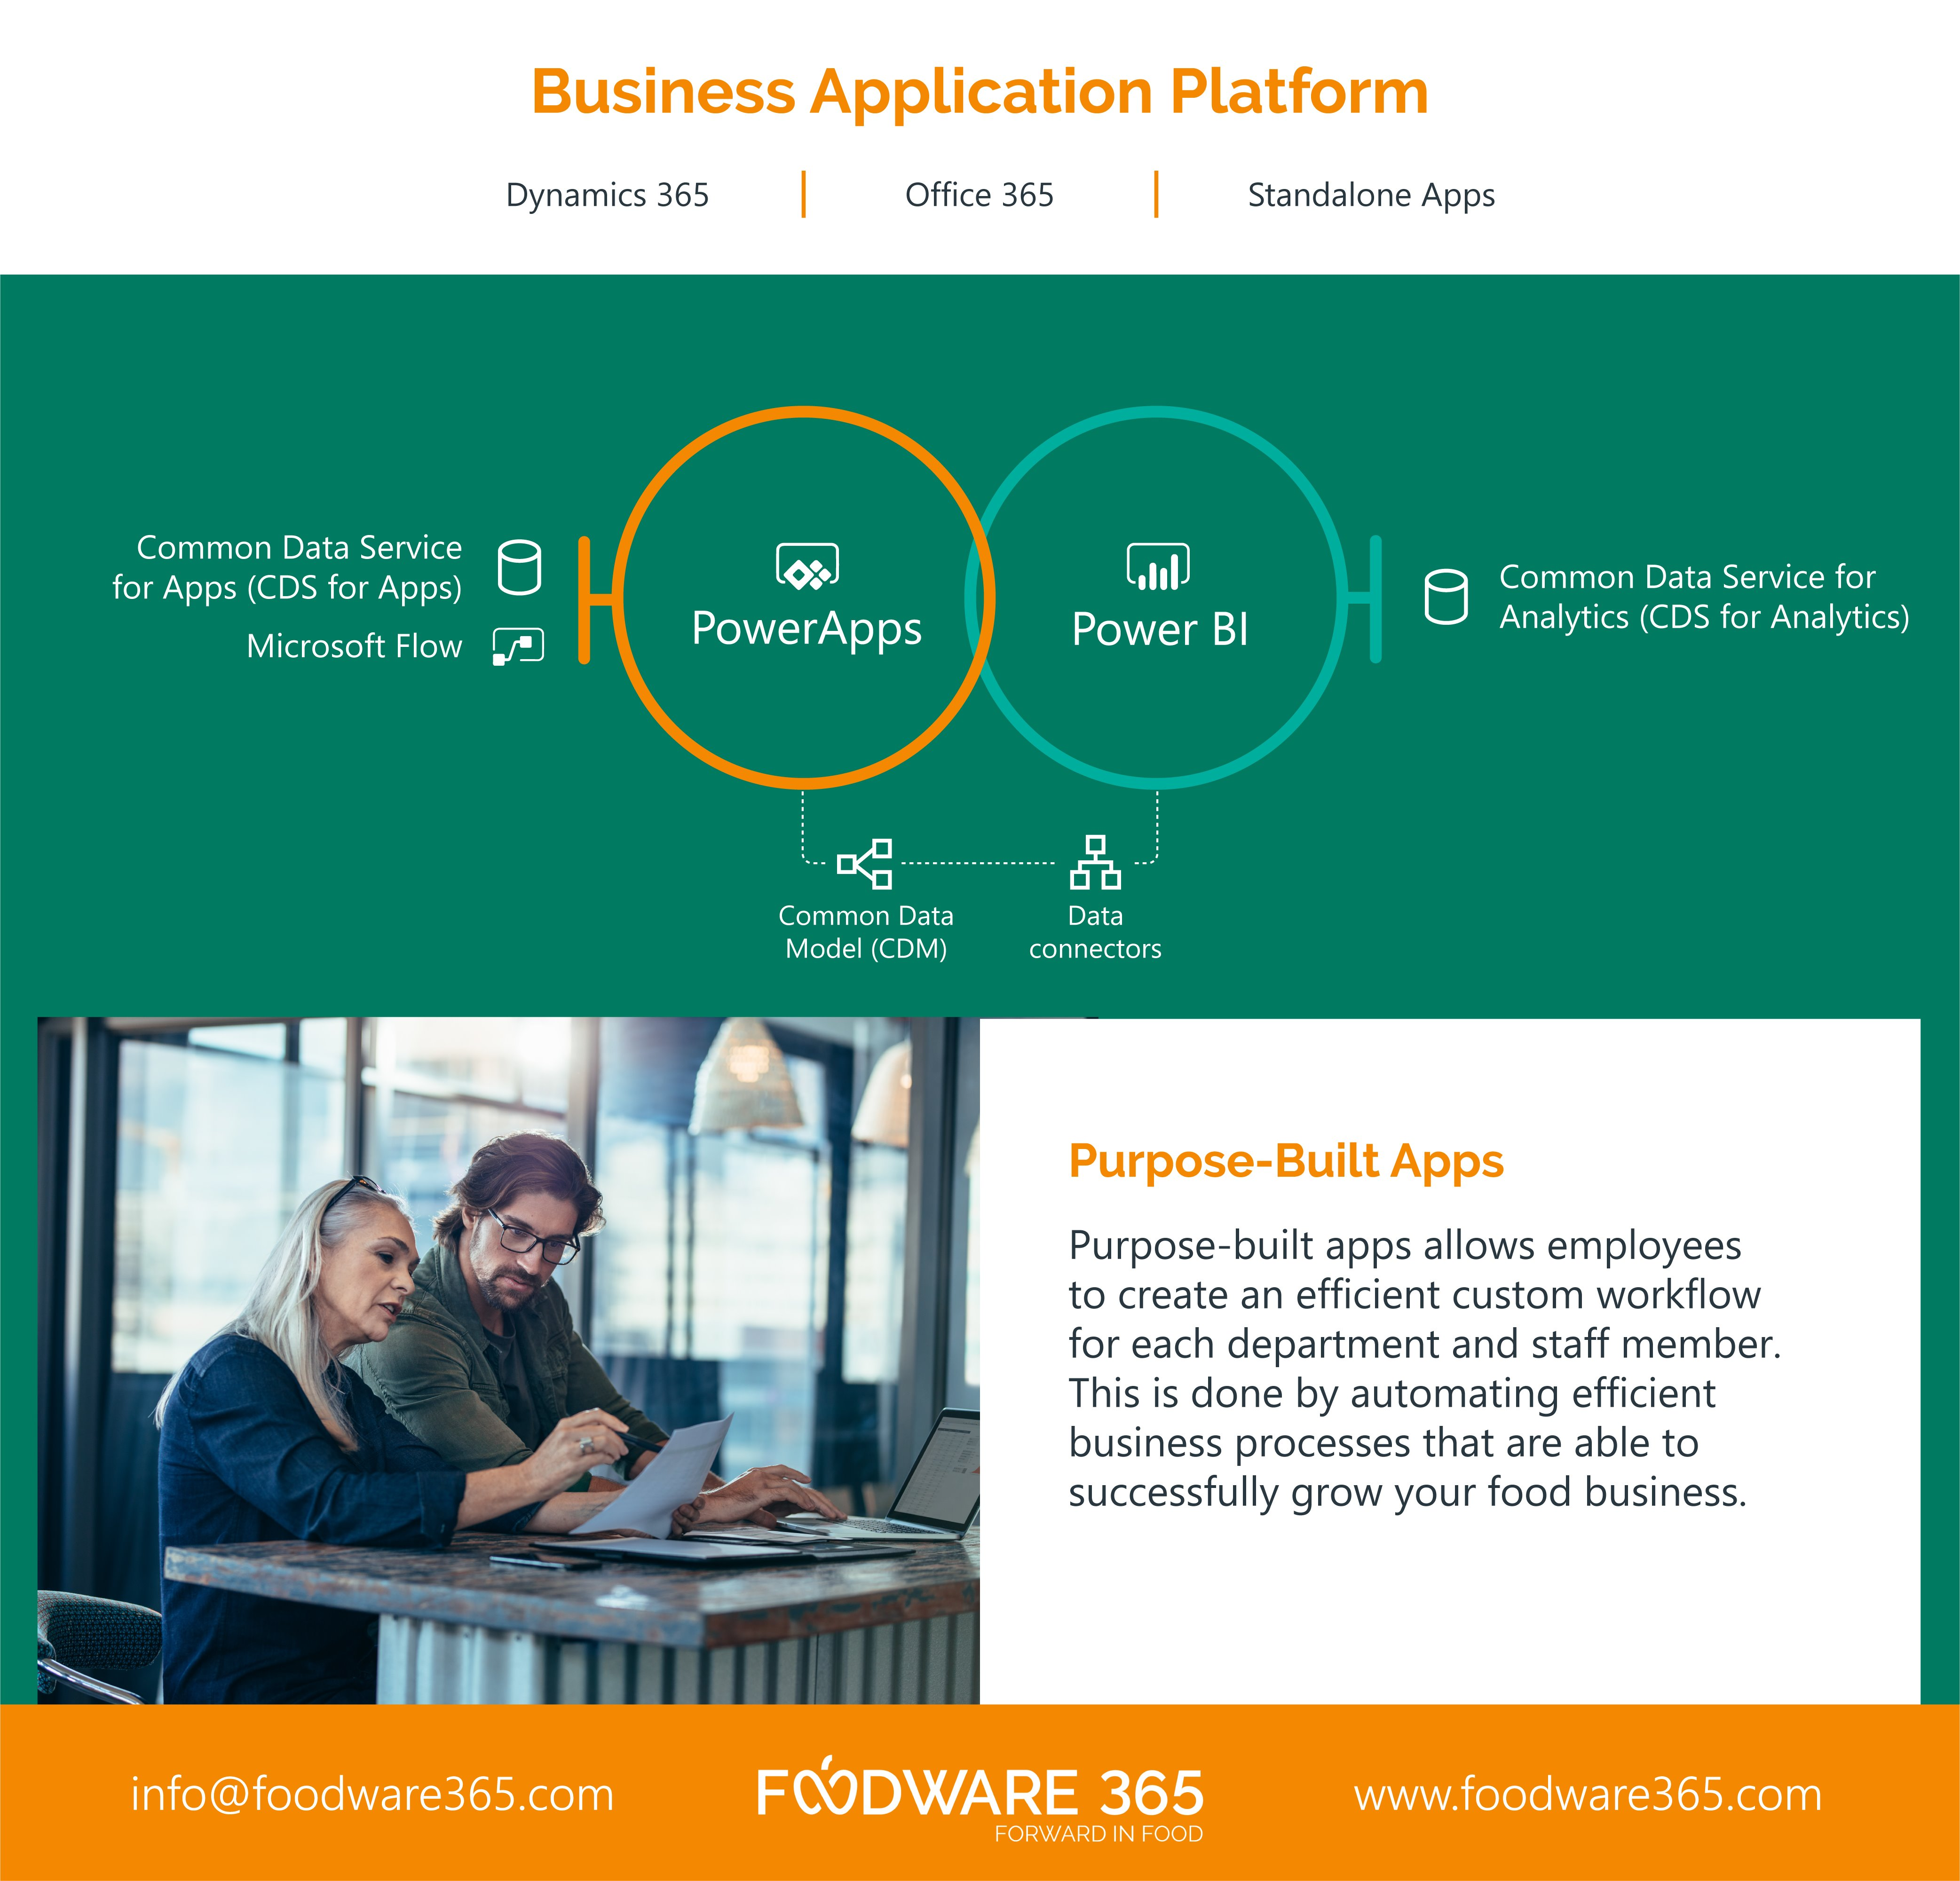 Purpose Built Apps - a Task driven Mobile approach onto a food ERP proposition